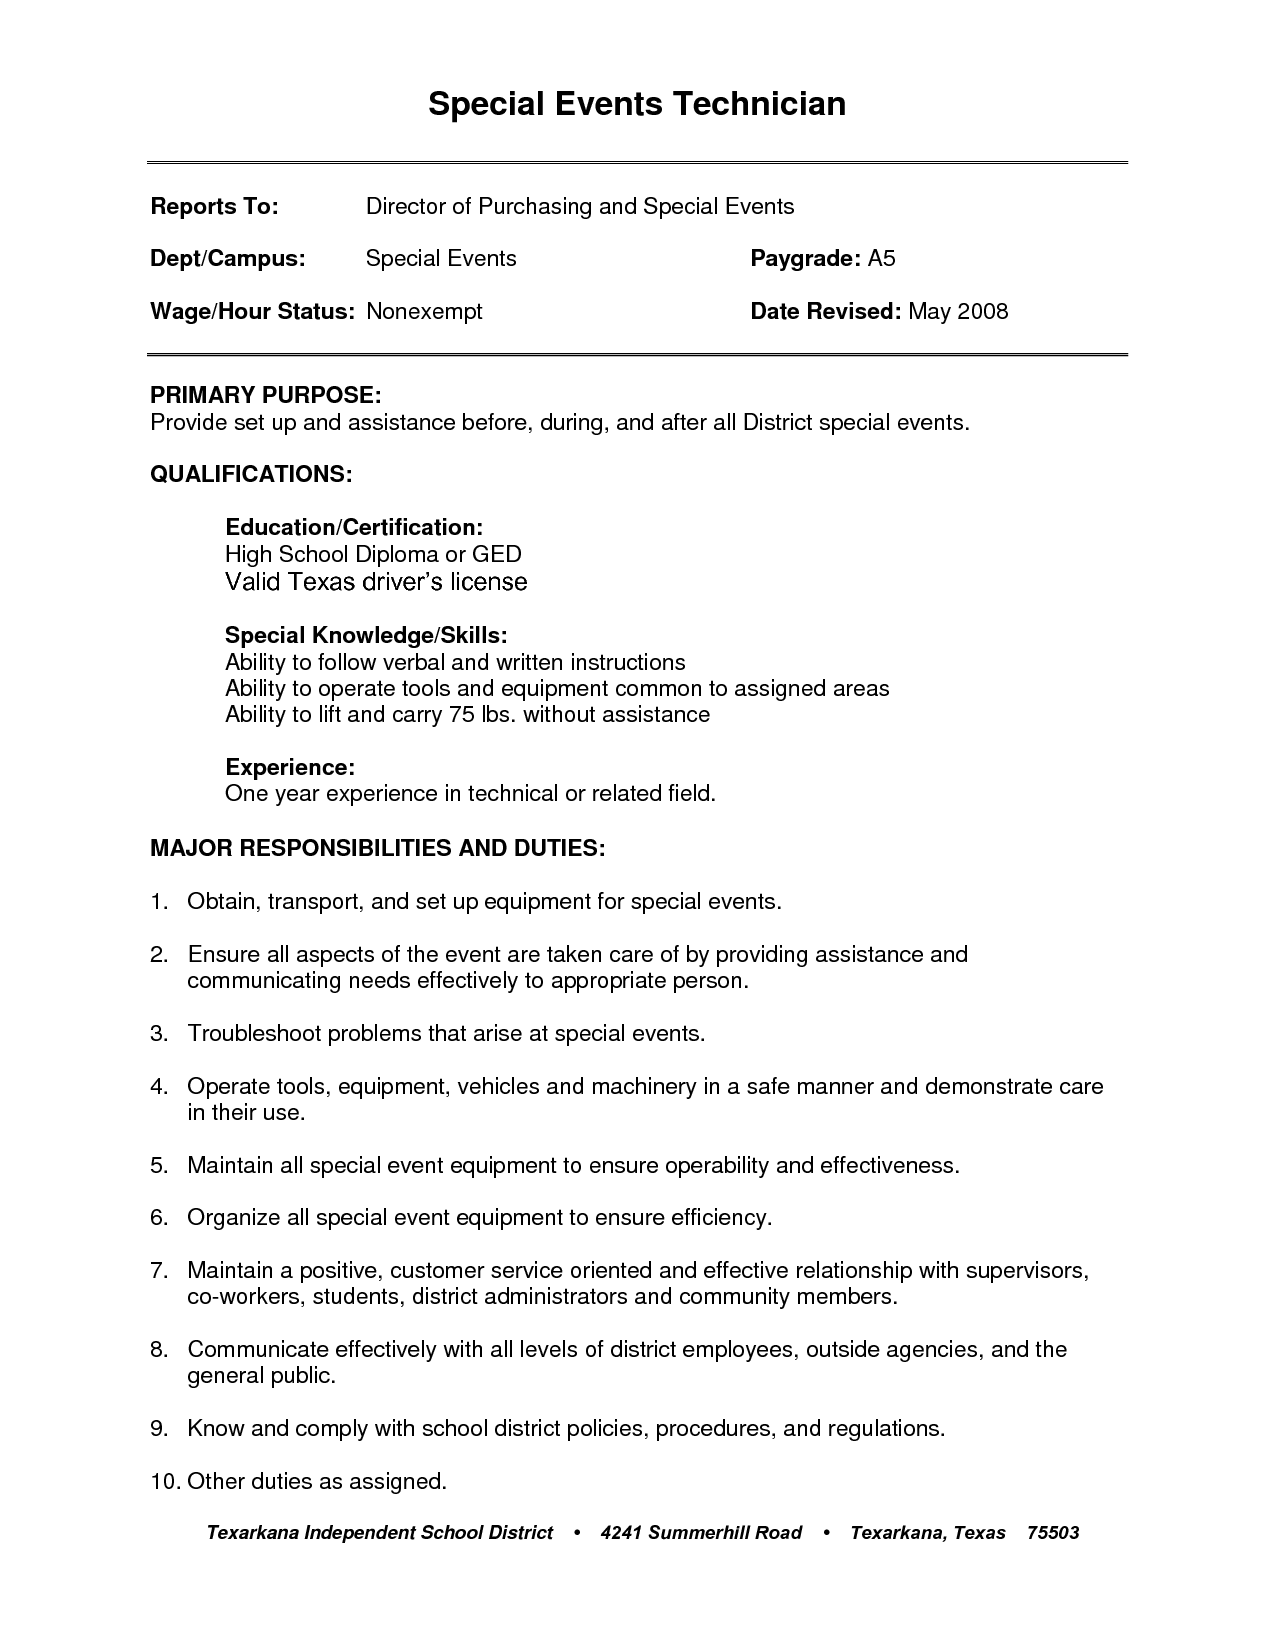 Laborer Resume Resume For General Job Teen Objective Cover Skills Labor And